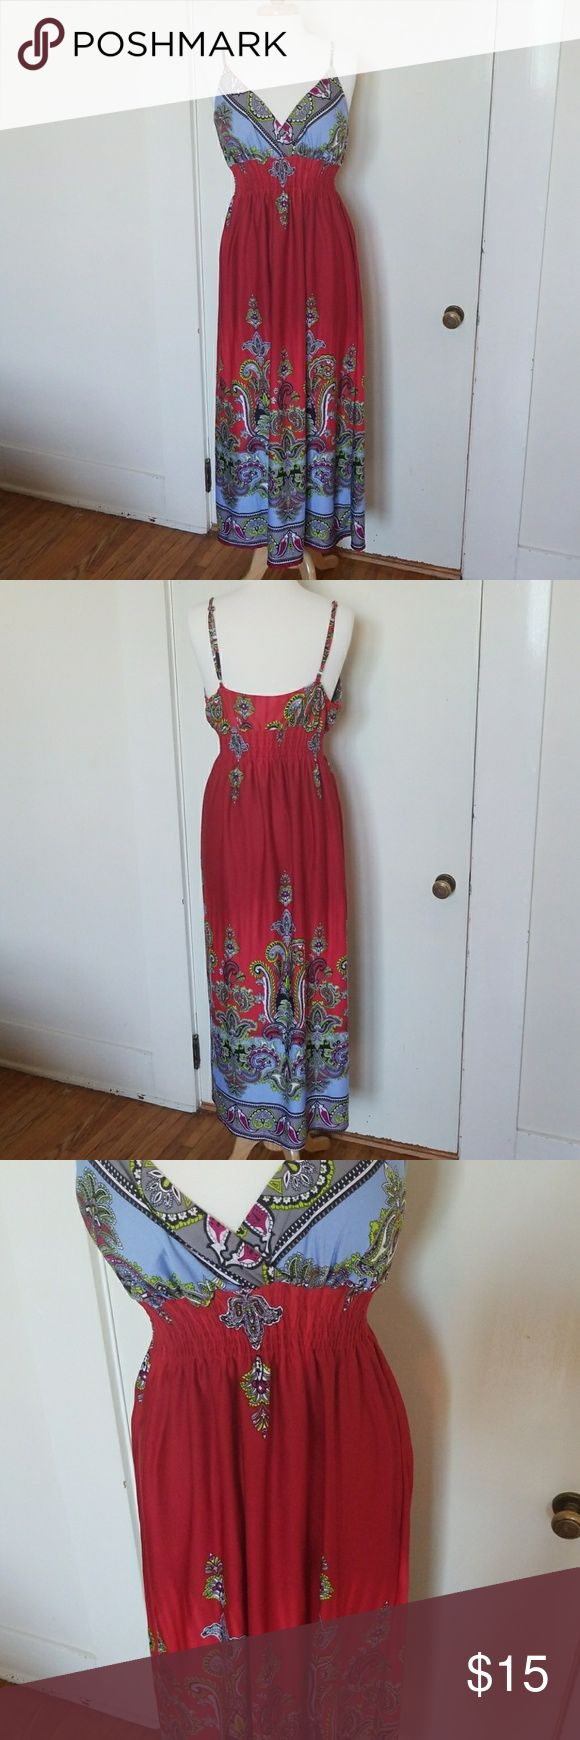 🖤1hr Sale🖤Paisley Print Maxi Dress Deep blood red color fades to baby blue with paisley print!! Stunning on!! Soft and Stretchy!! Adjustable straps, empire waist, lightly lined bust, and in good used condition!! She's Cool Dresses Maxi